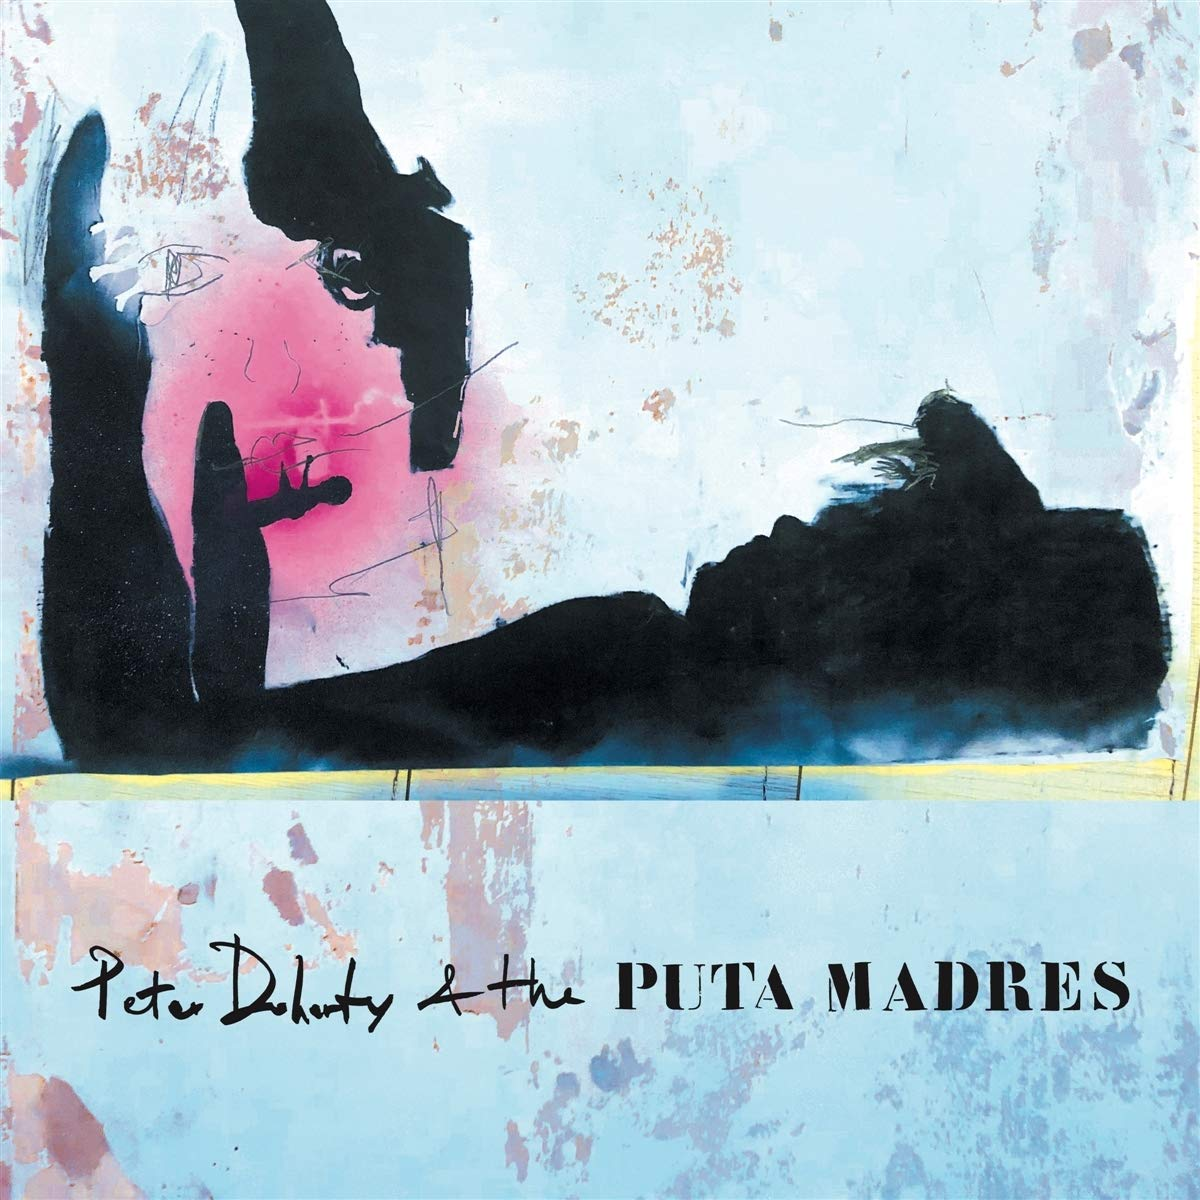 Peter Doherty & The Puta Madres - Peter Doherty & The Puta Madres [LP/DVD]